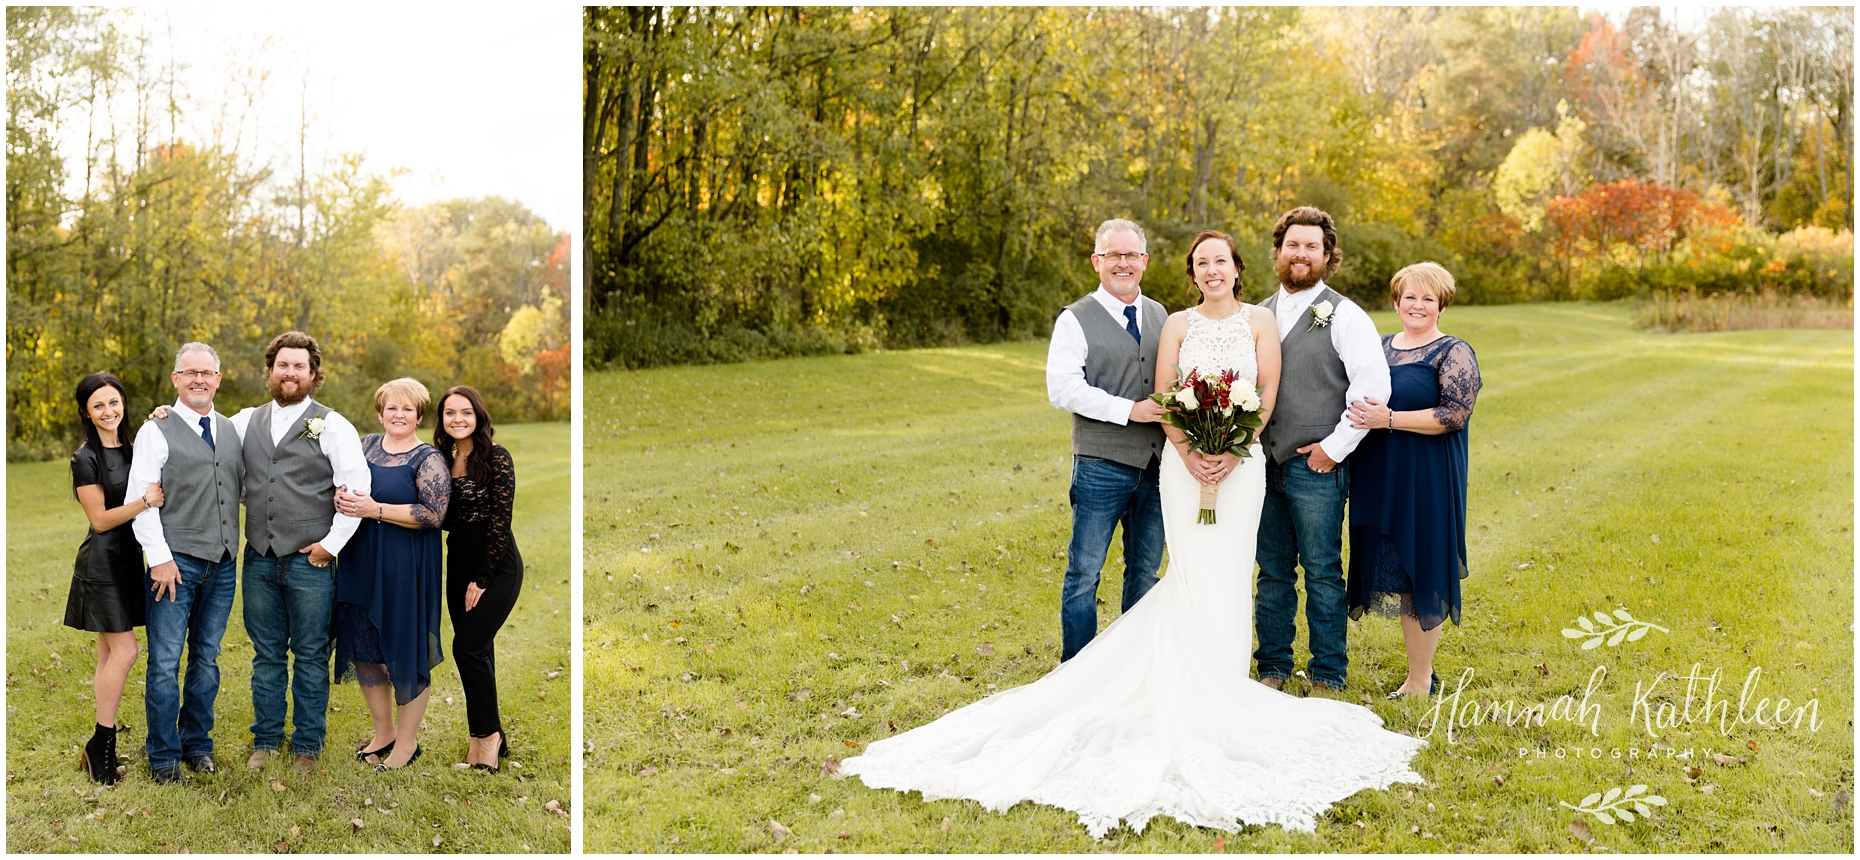 Buffalo_Brian_Jessica_Fall_Autumn_Wedding_Photographer